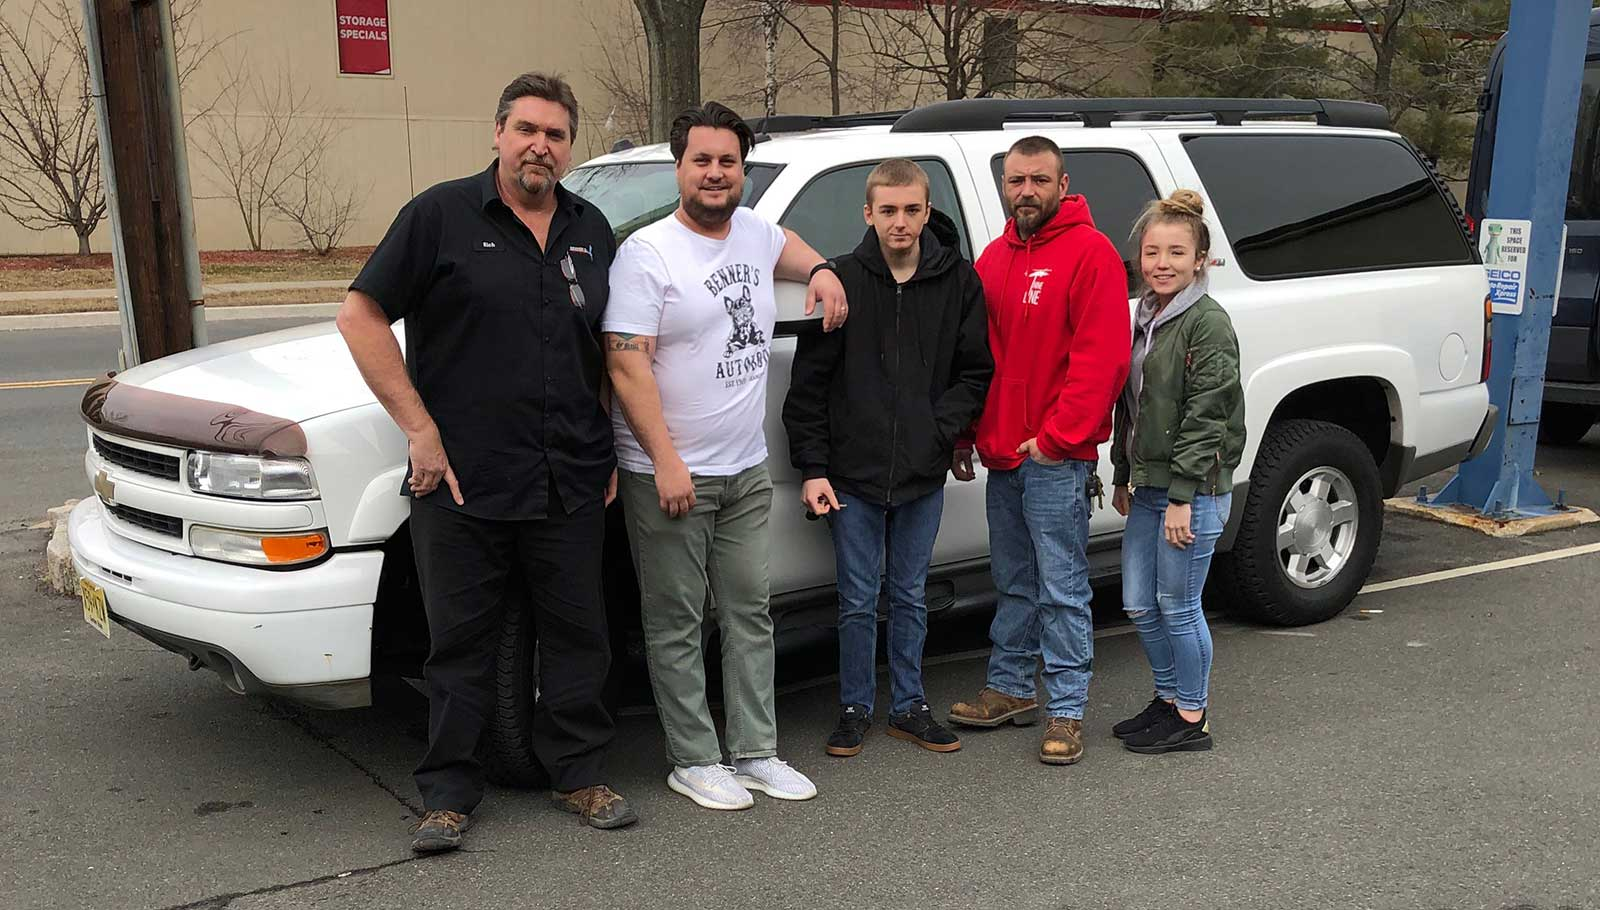 benners with donated car